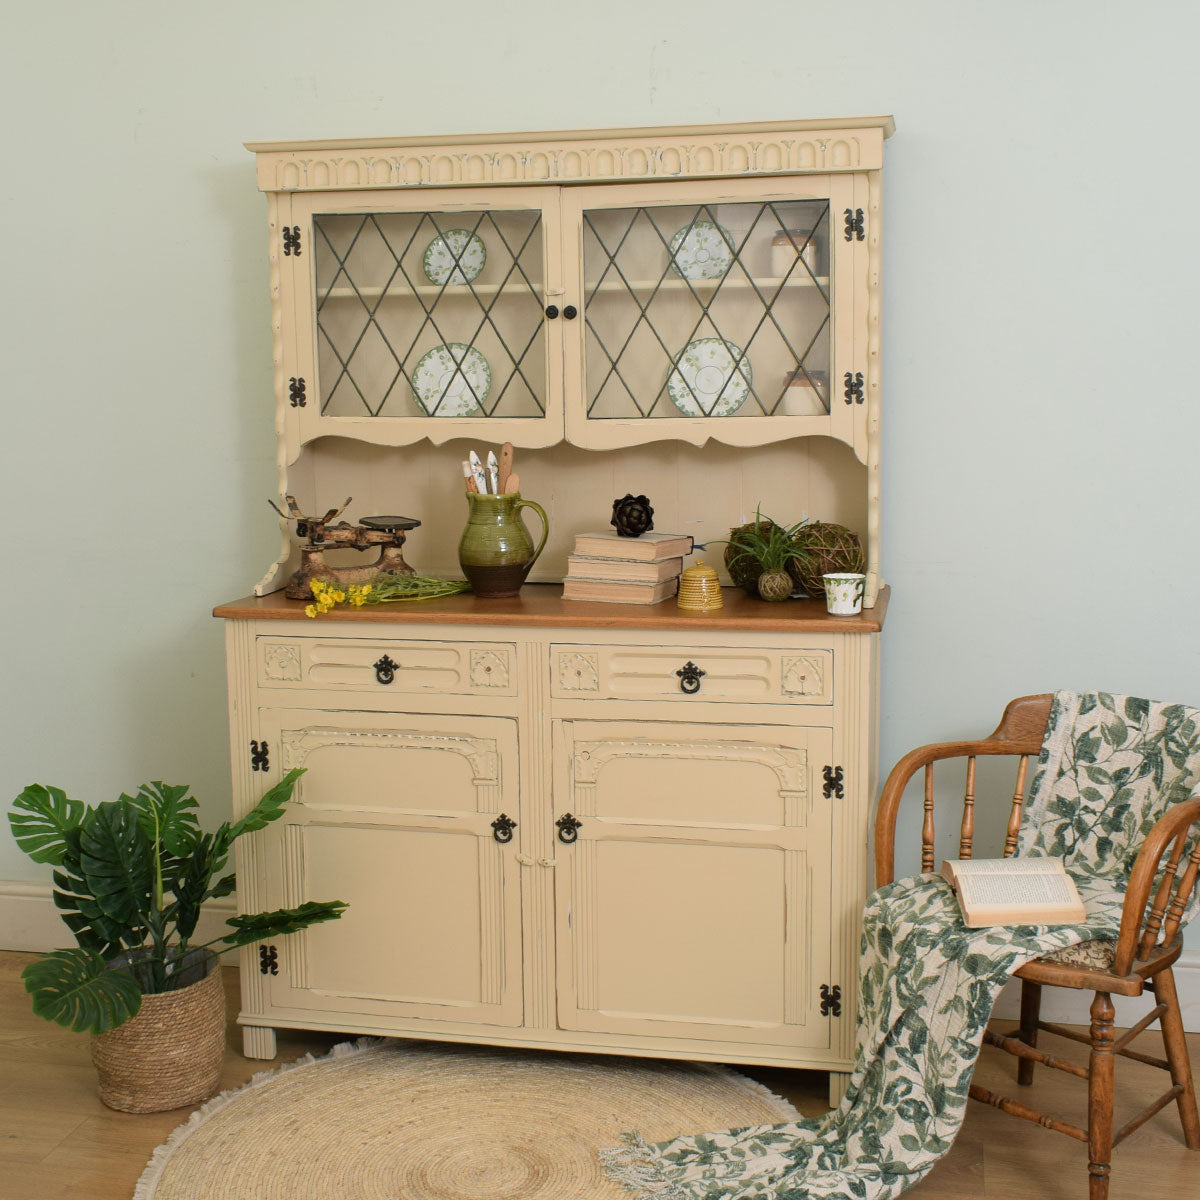 Painted Shabby chic Dresser